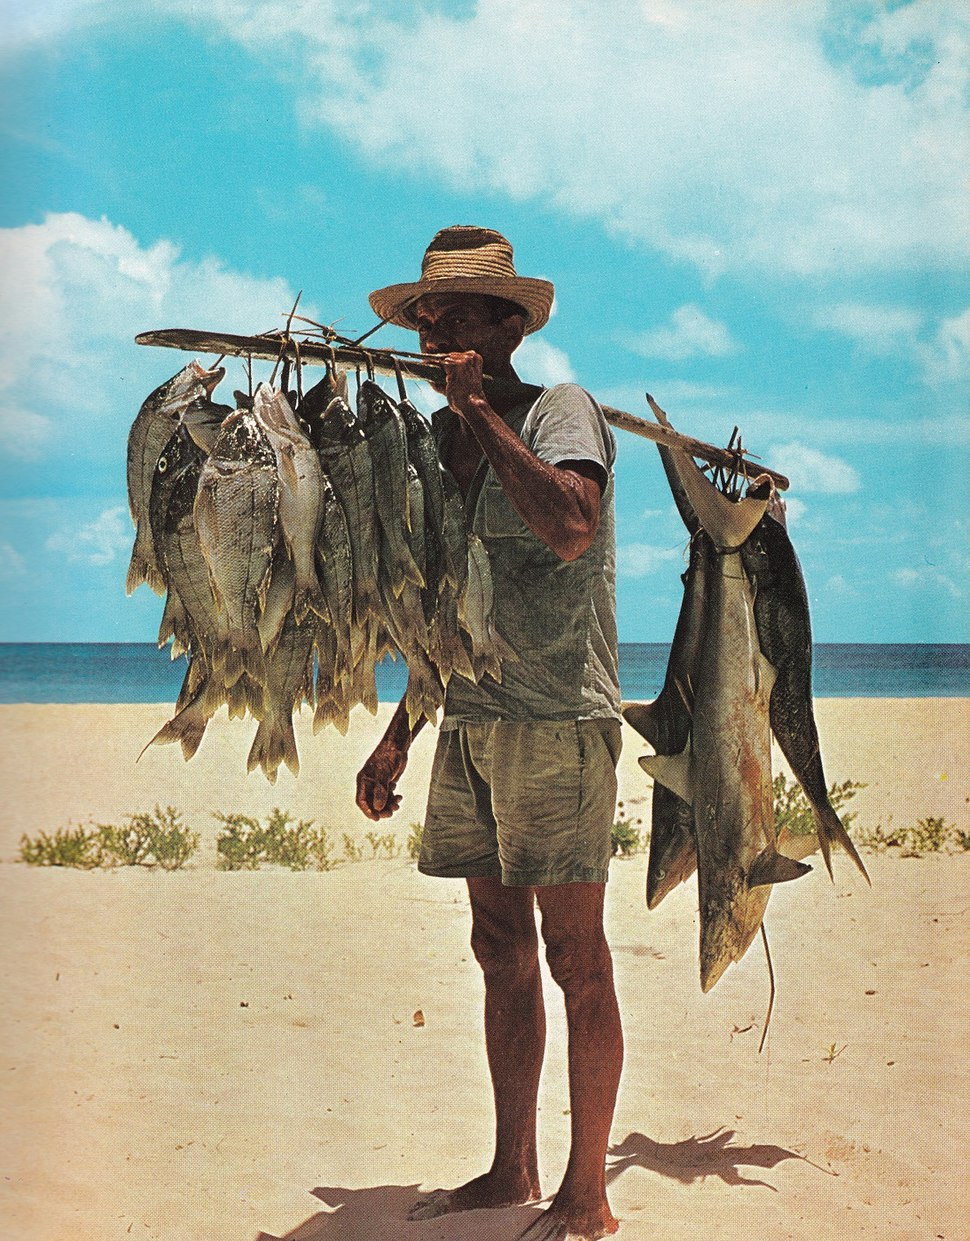 Fisherman and his catch Seychelles